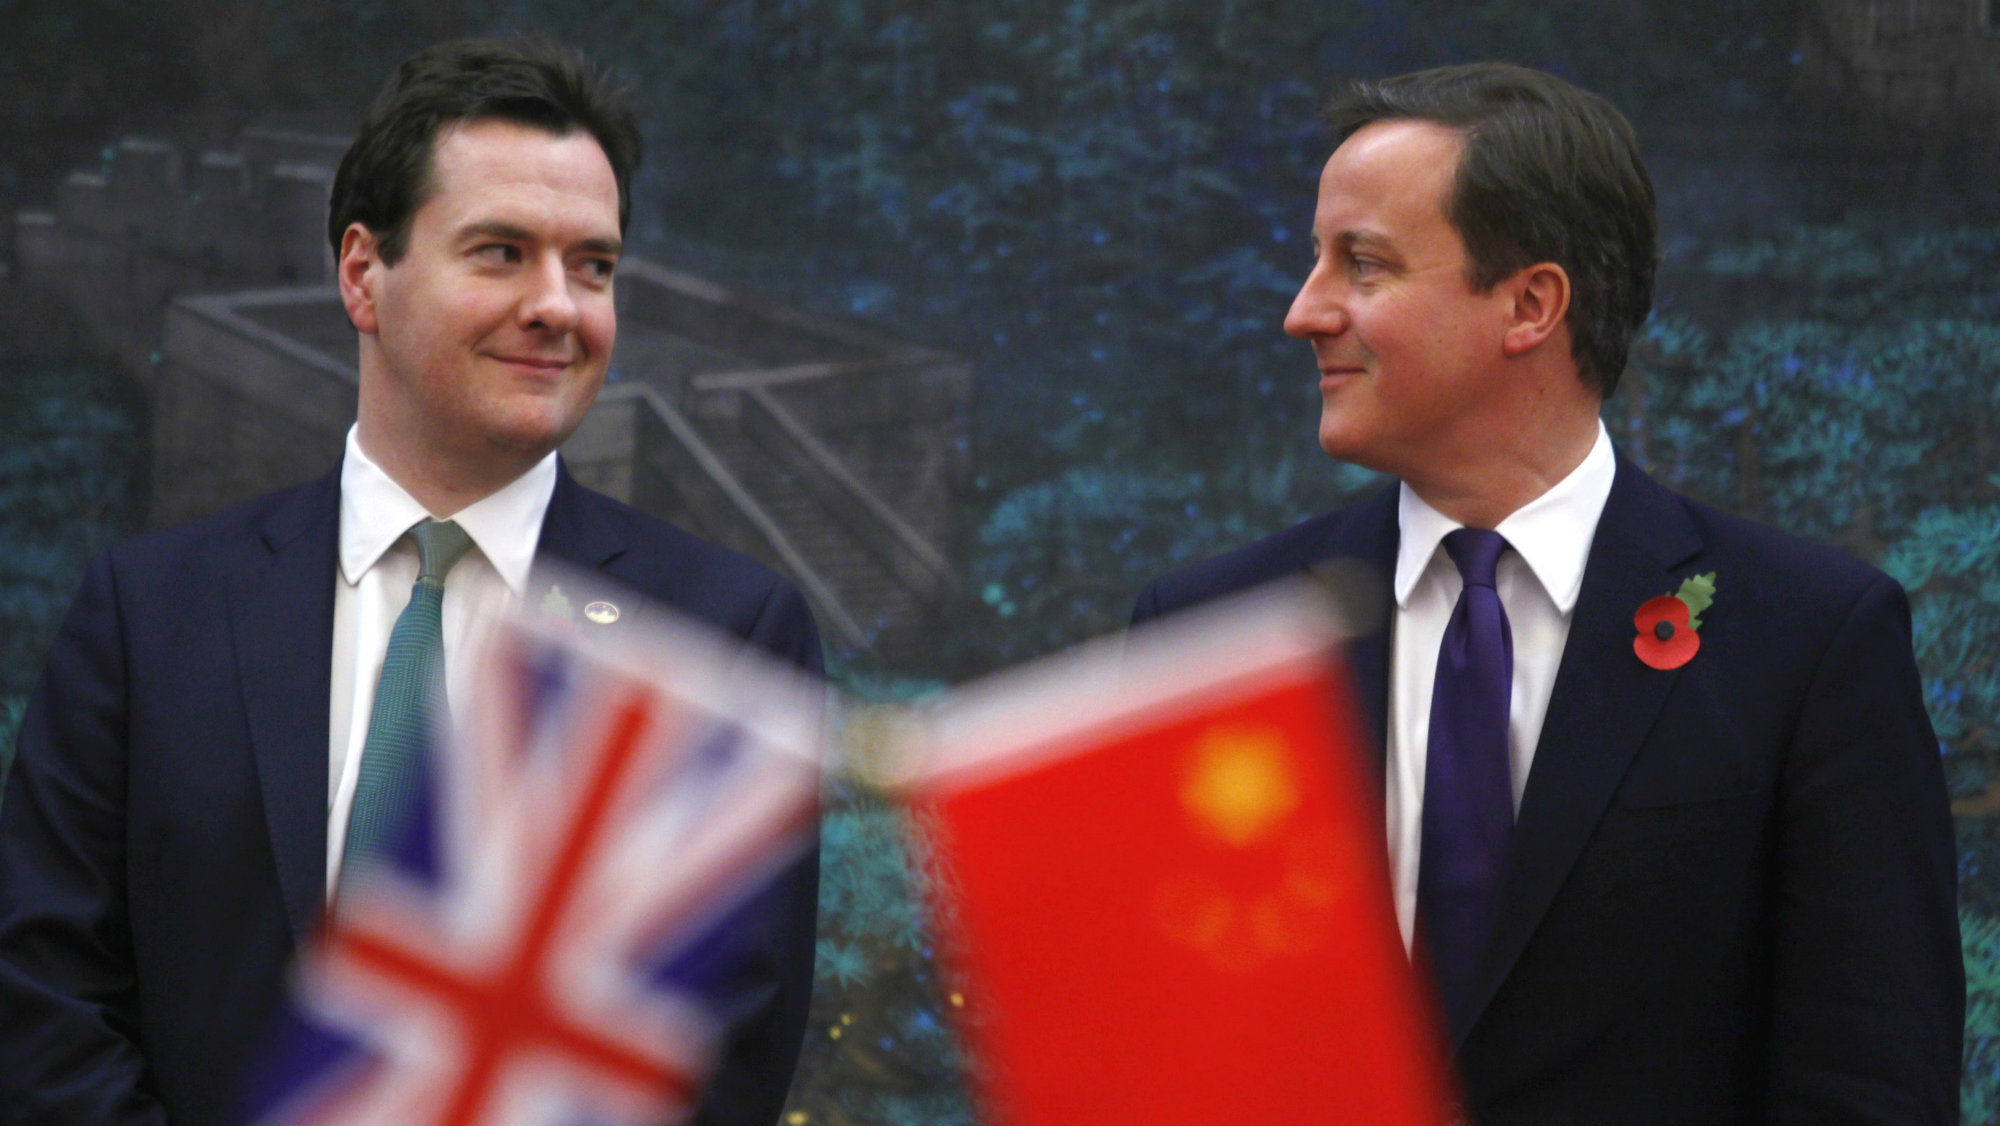 Britain's Prime Minister David Cameron (R) and Britain's Chancellor of the Exchequer George Osborne attend a signing ceremony with China's Premier Wen Jiabao (not pictured) at the Great Hall of the People in Beijing, China, 09 November 2010.